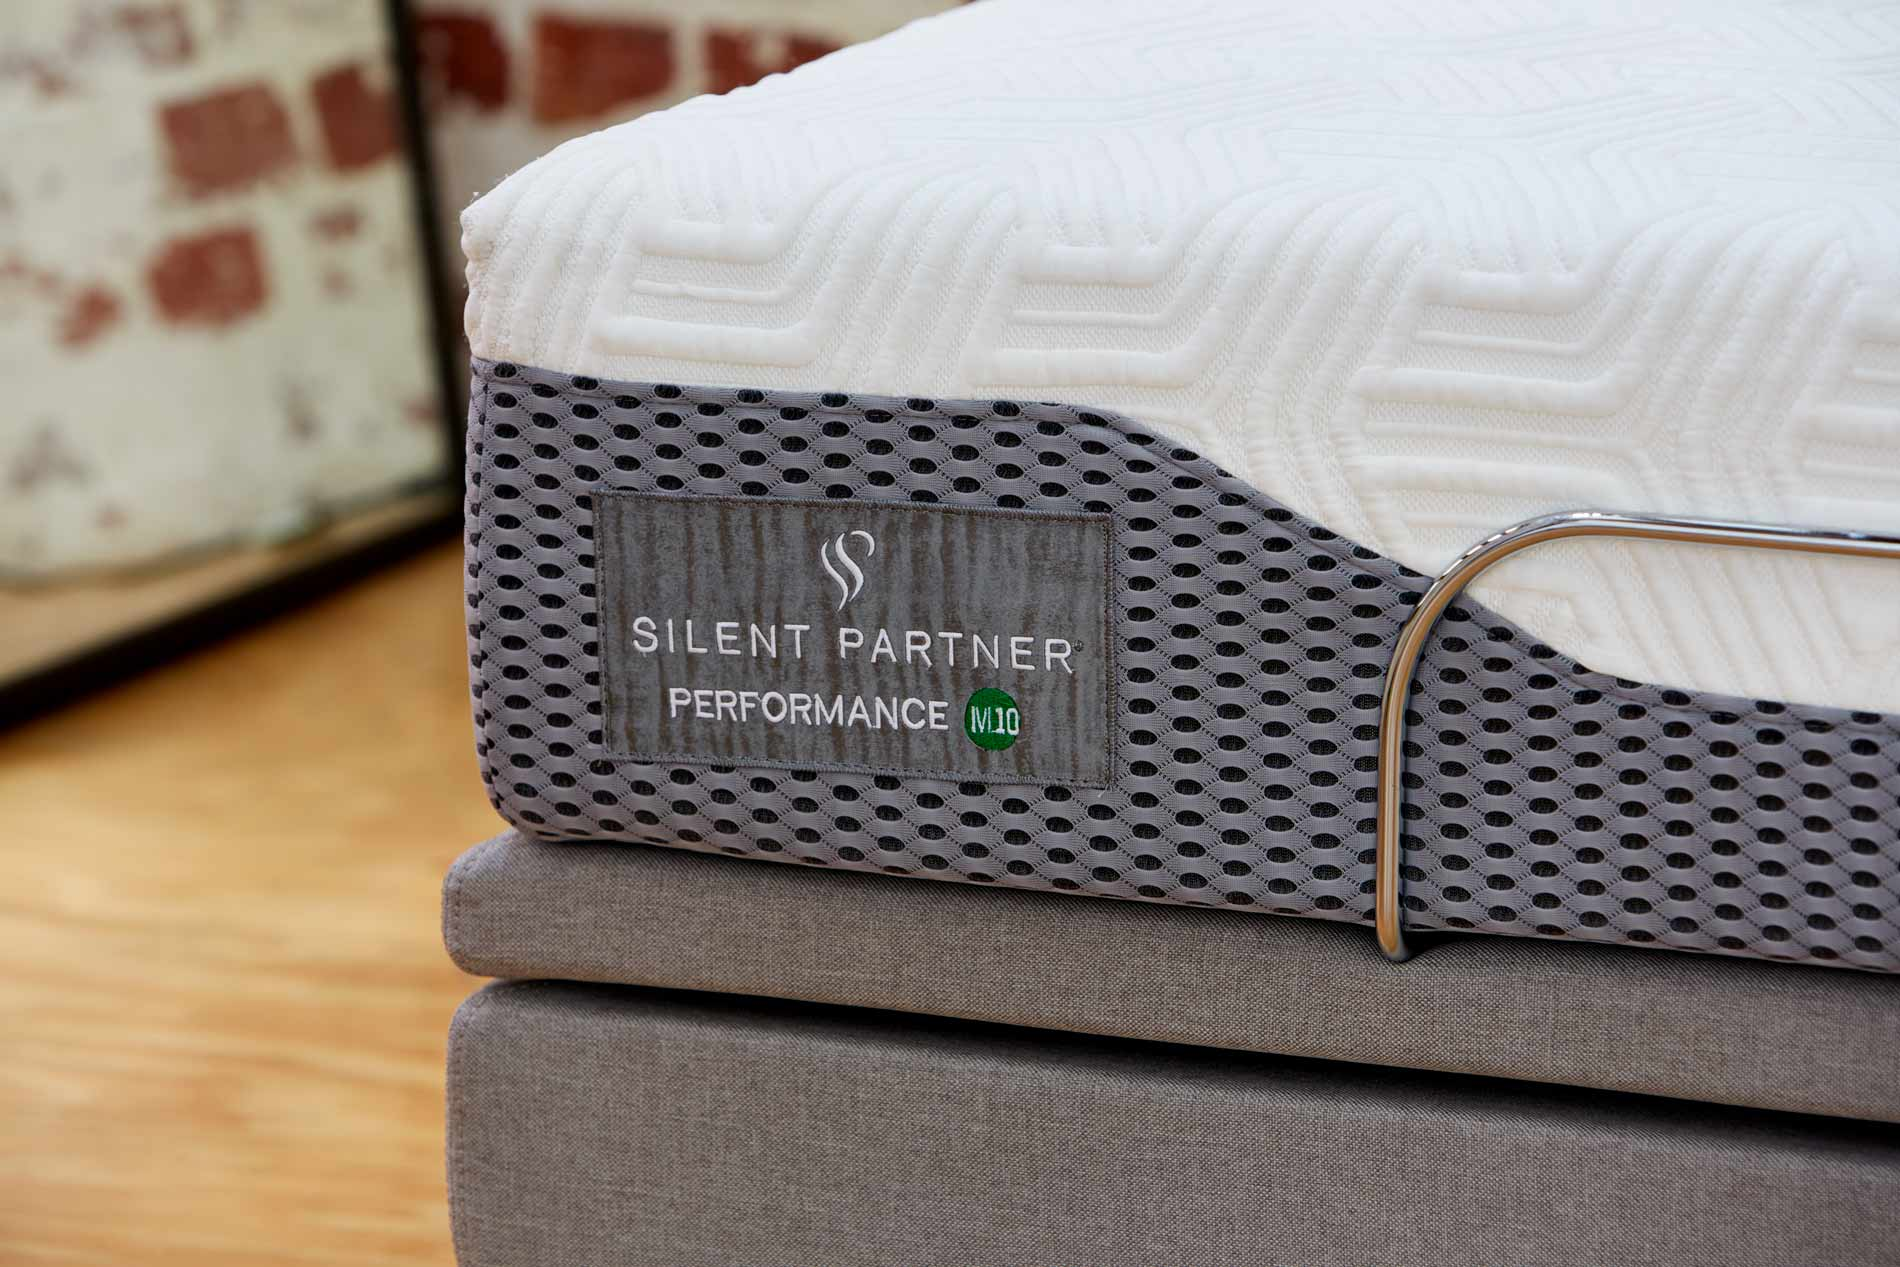 SP PERFORMANCE M10 QB MATTRESS  image 2